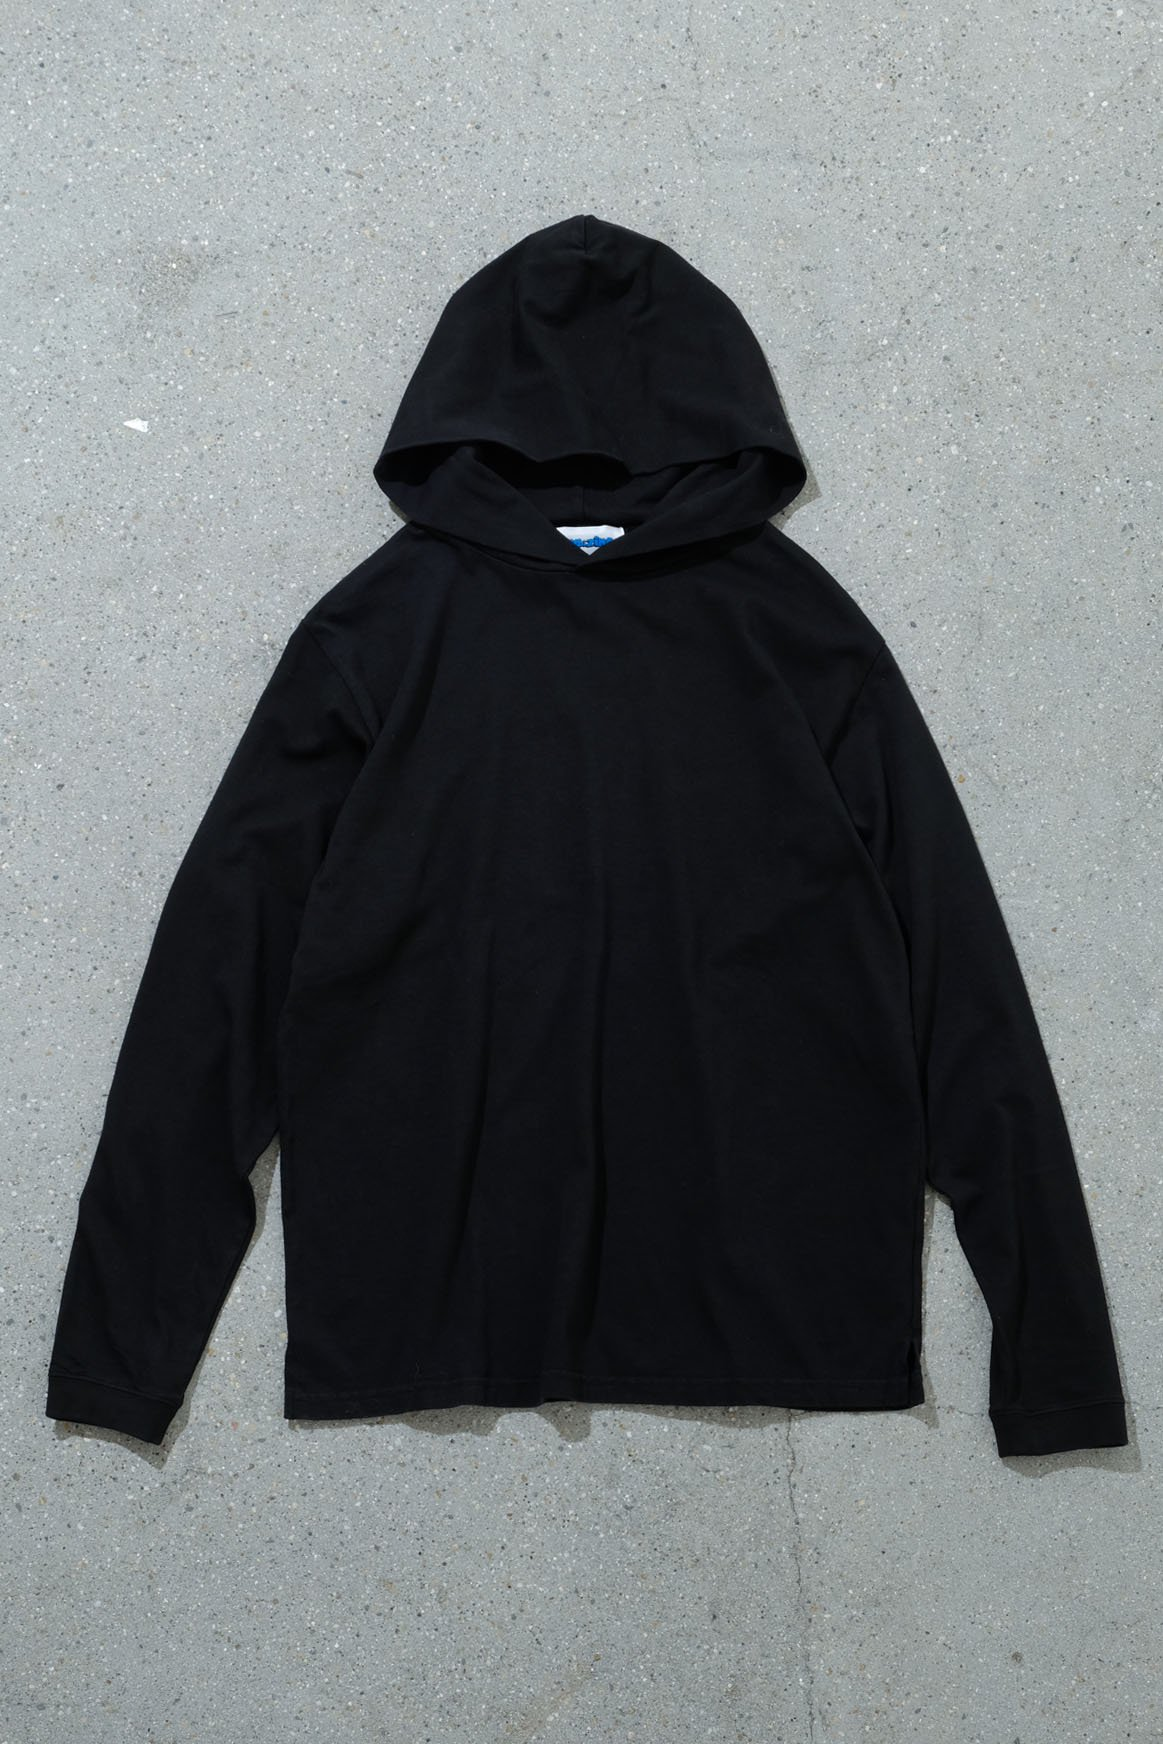 ORIGINAL MADE by IMA:ZINE / LONG SLEEVE HOOD T-SHIRT(BLACK)